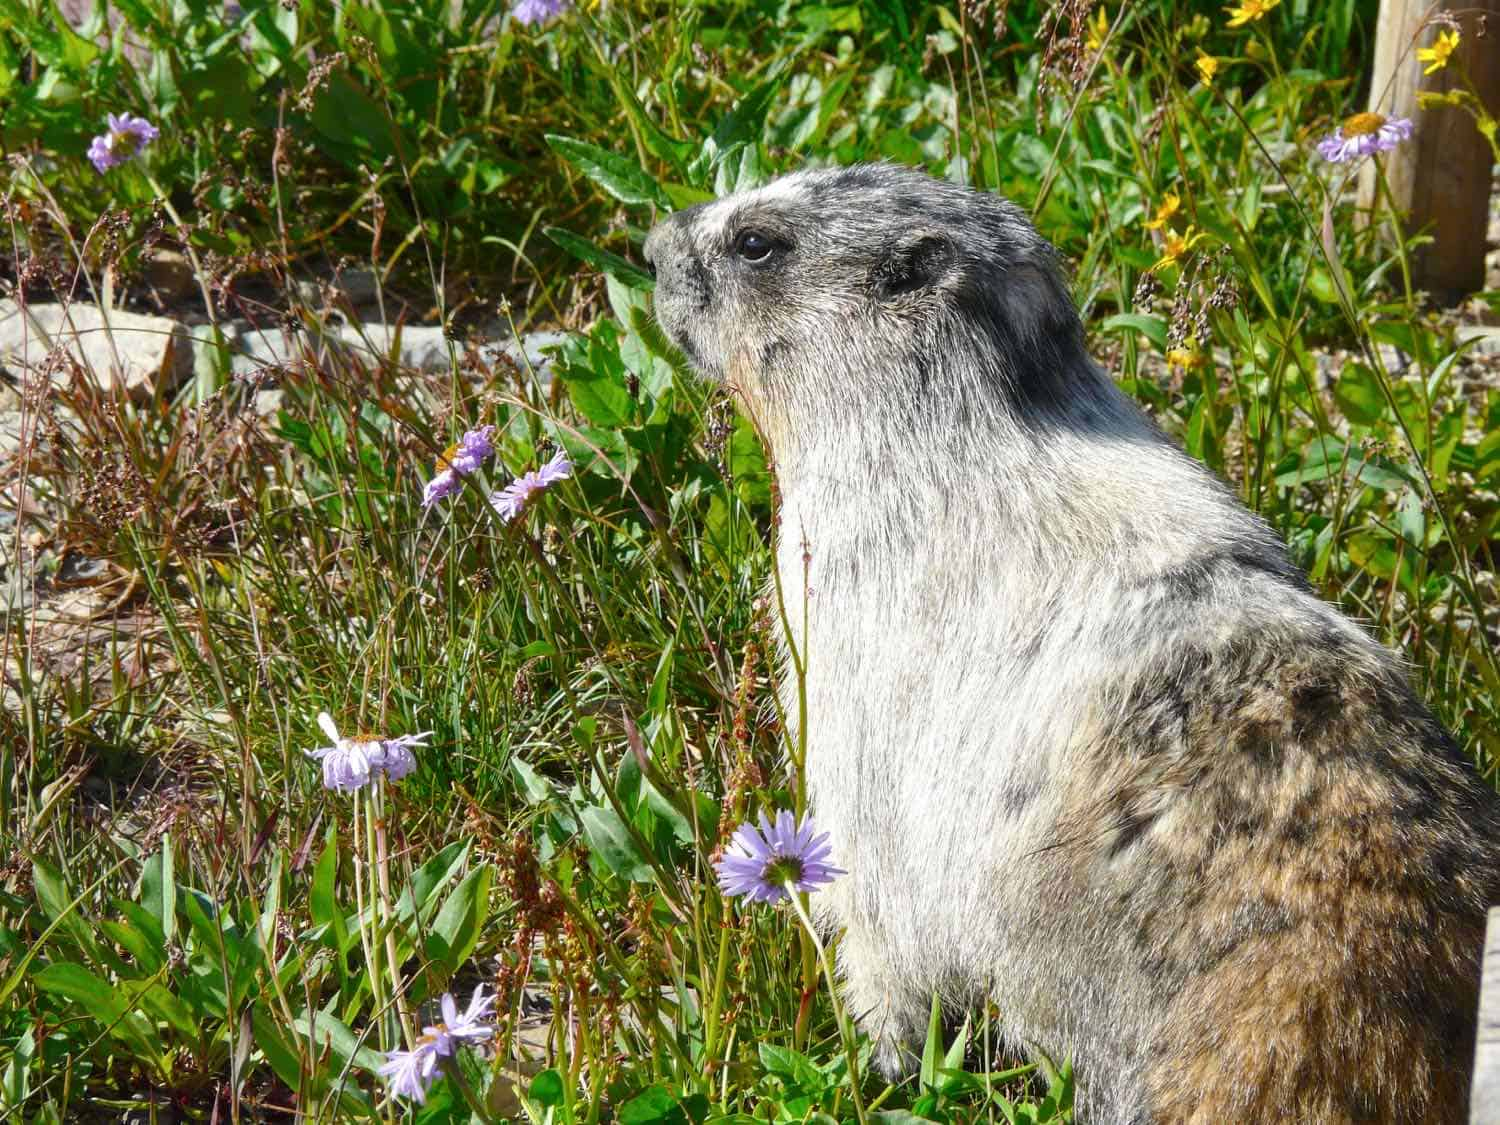 gray marmot in widlflowers and grass